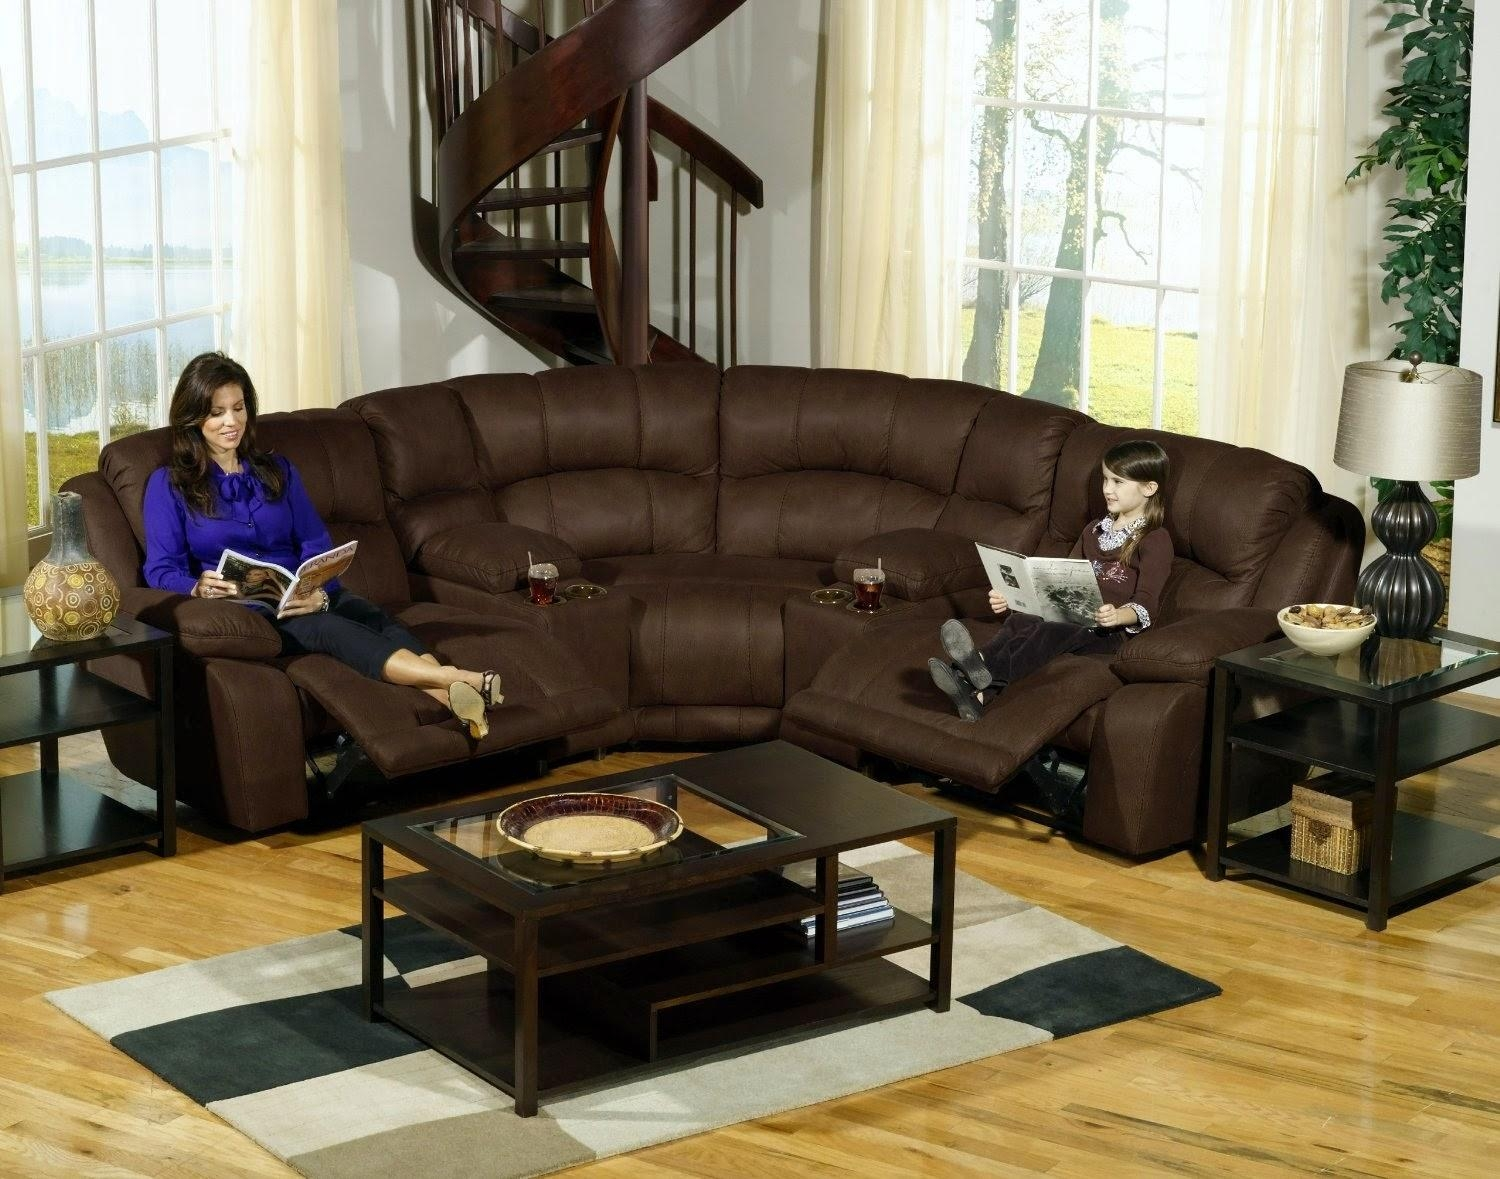 Sofas Center : Fascinating Curved Sectional Recliner Sofas For Inside Curved Sectional Sofas With Recliner (Image 19 of 20)